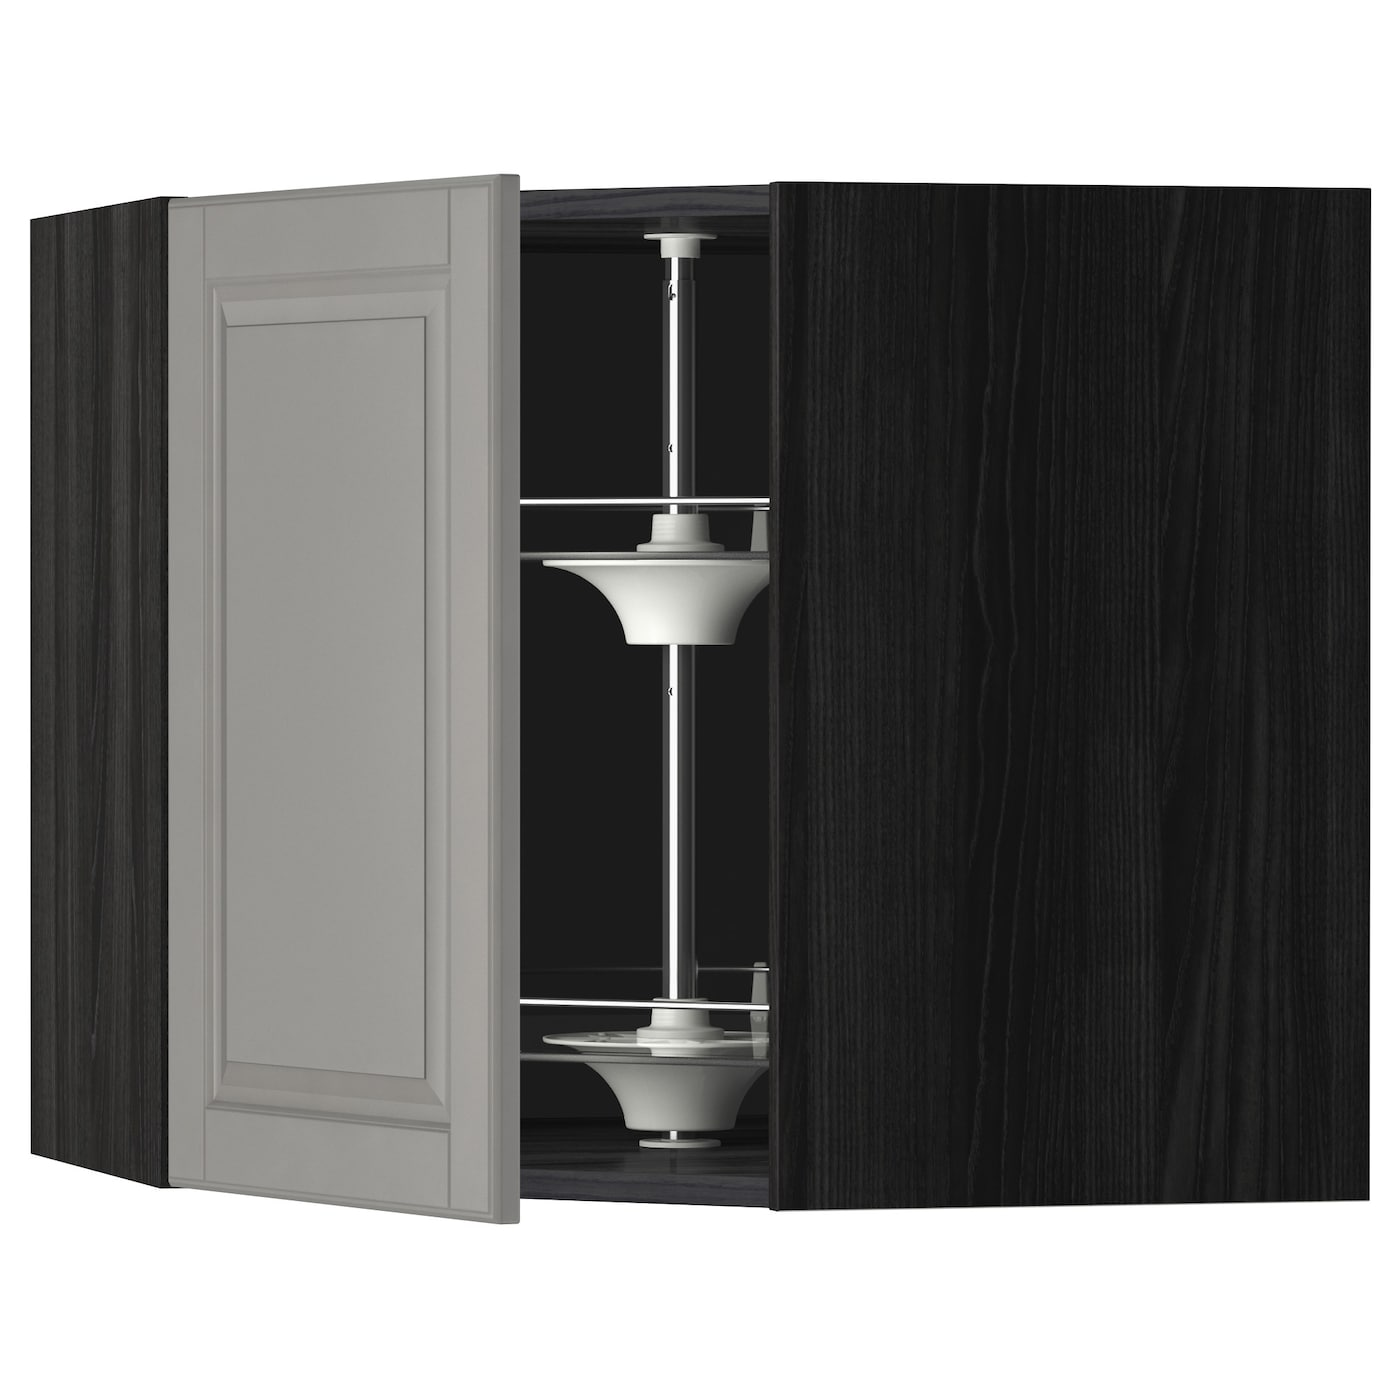 Metod corner wall cabinet with carousel black bodbyn grey for Black corner bathroom cabinet